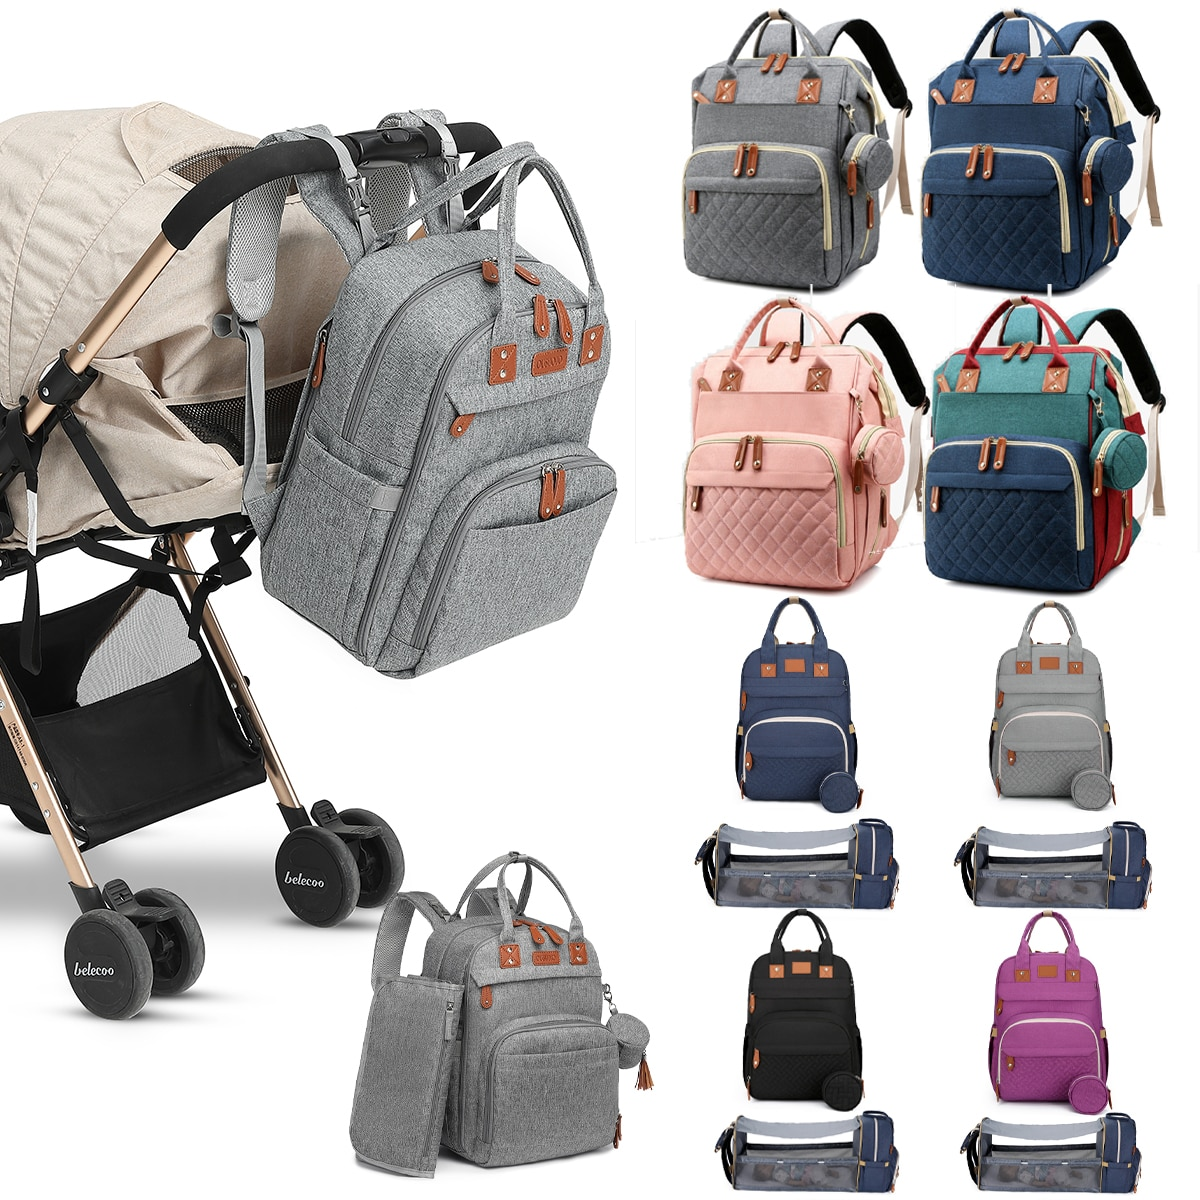 Diaper Bag Nappy Backpack Mummy  Bag Maternity Packages Multi-function  Waterproof Outdoor Travel Diaper Bags For Baby Care недорого